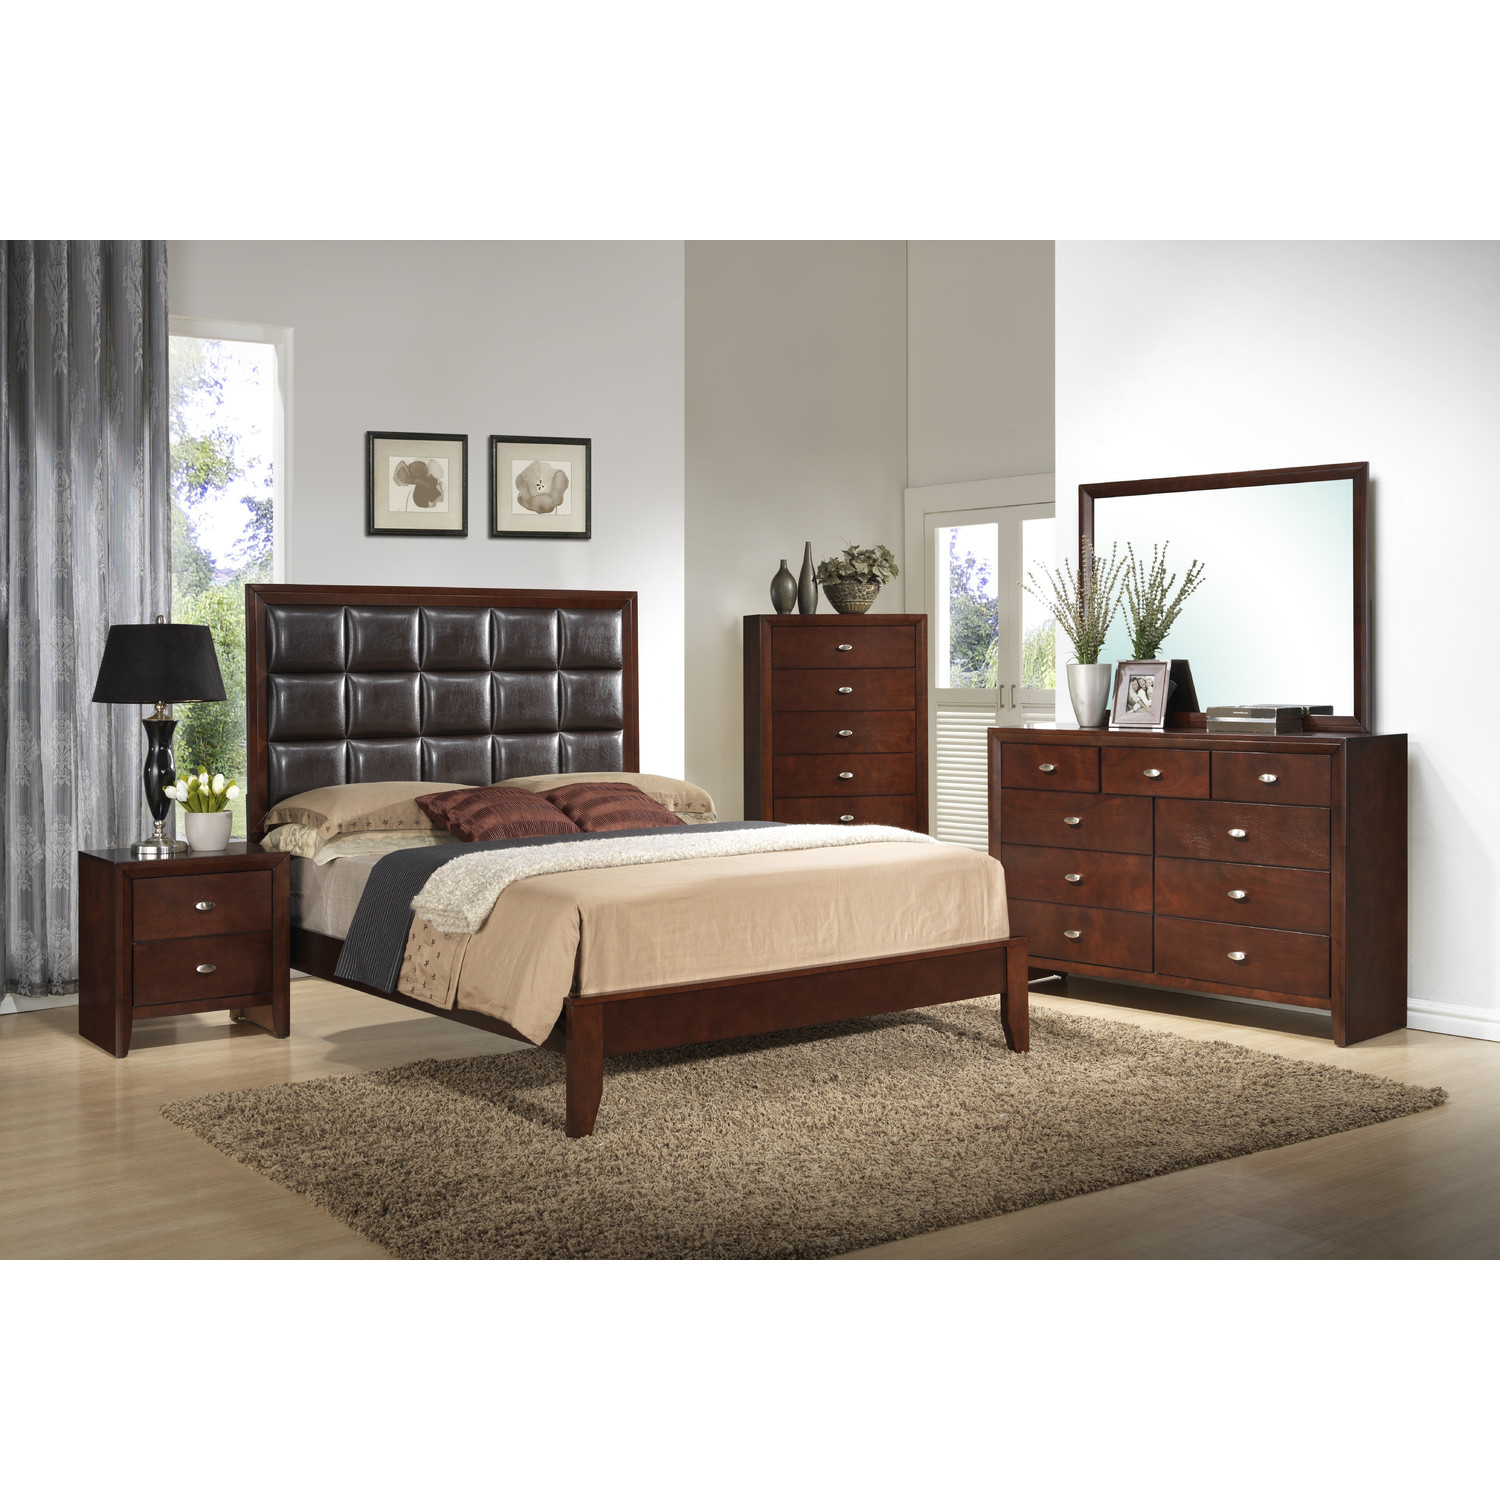 Carolina Bed Brown Cherry - GLO-CAROLINA-BR-C-BX-M-BED